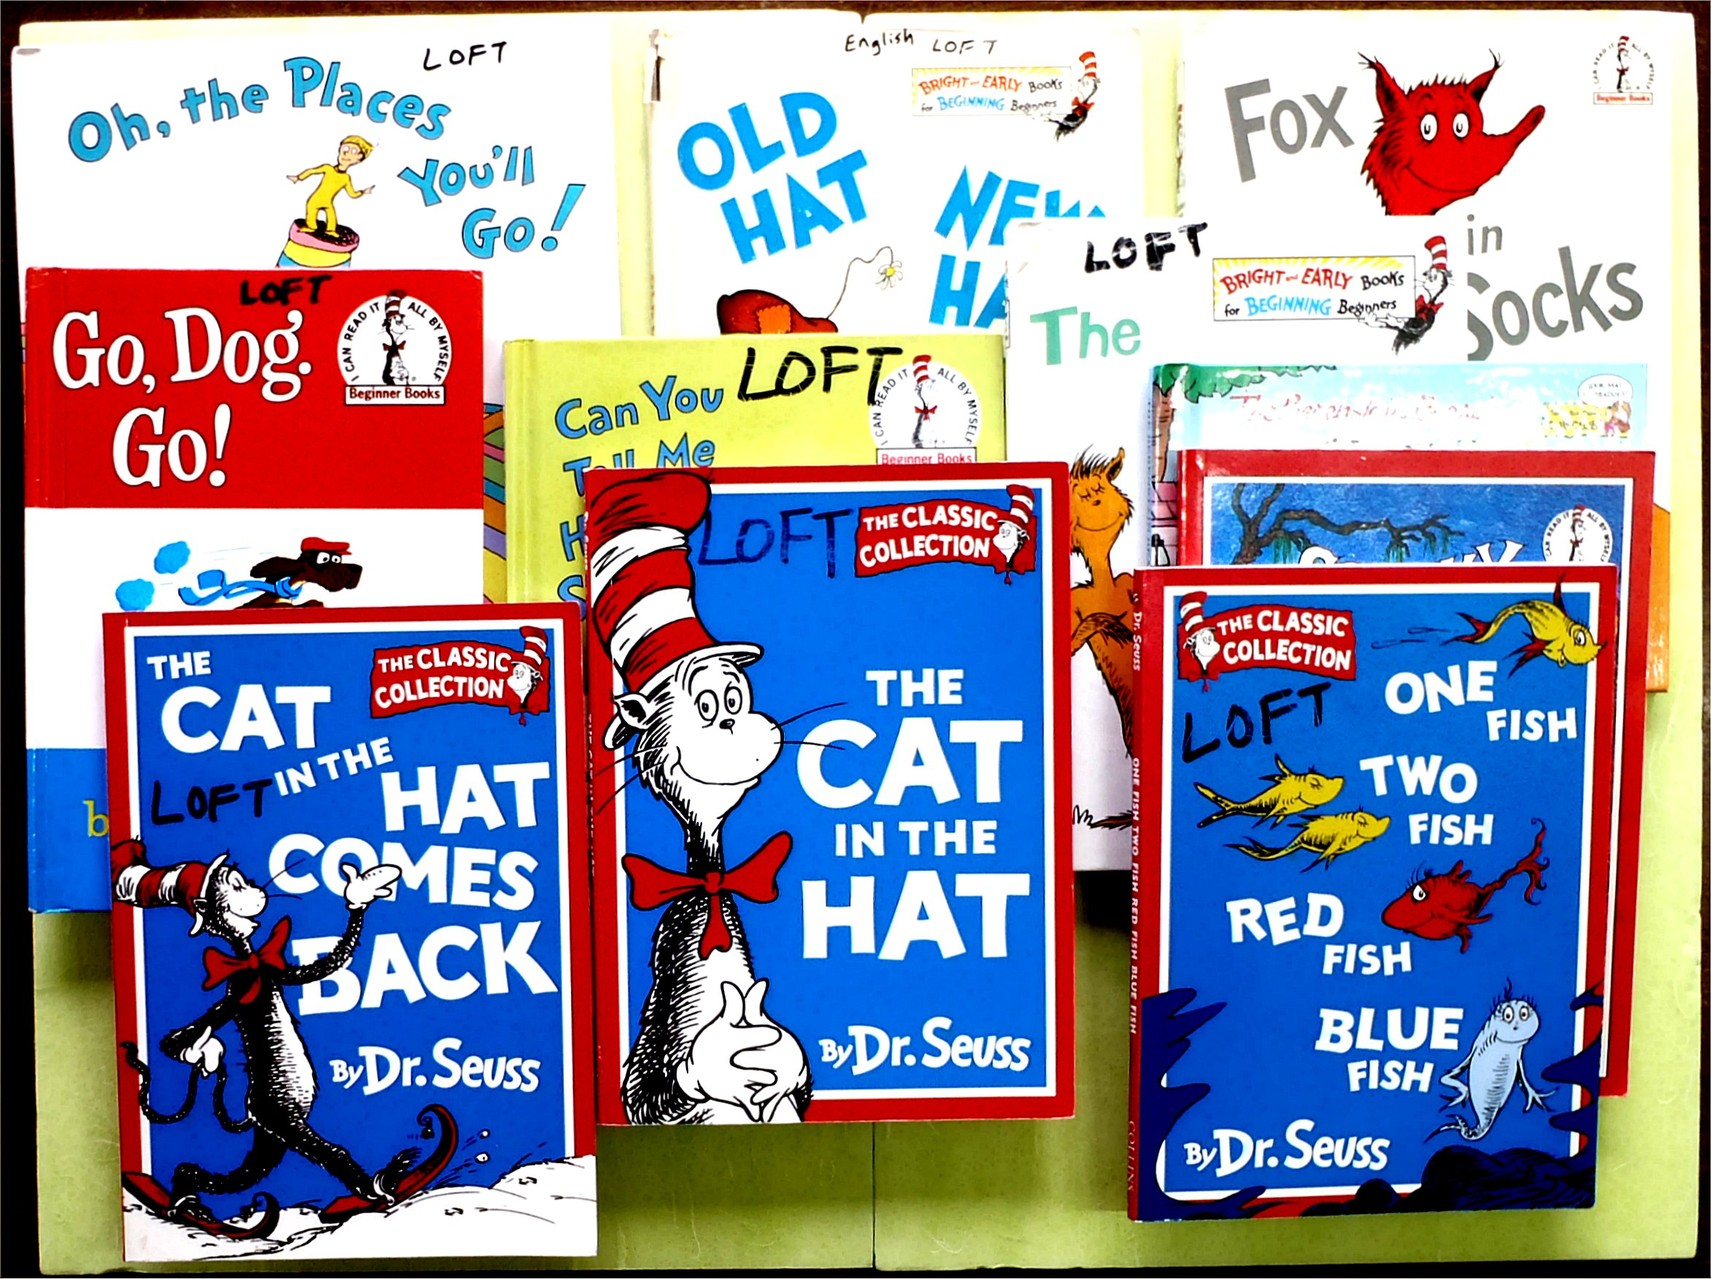 Dr. Seuss (very popular)